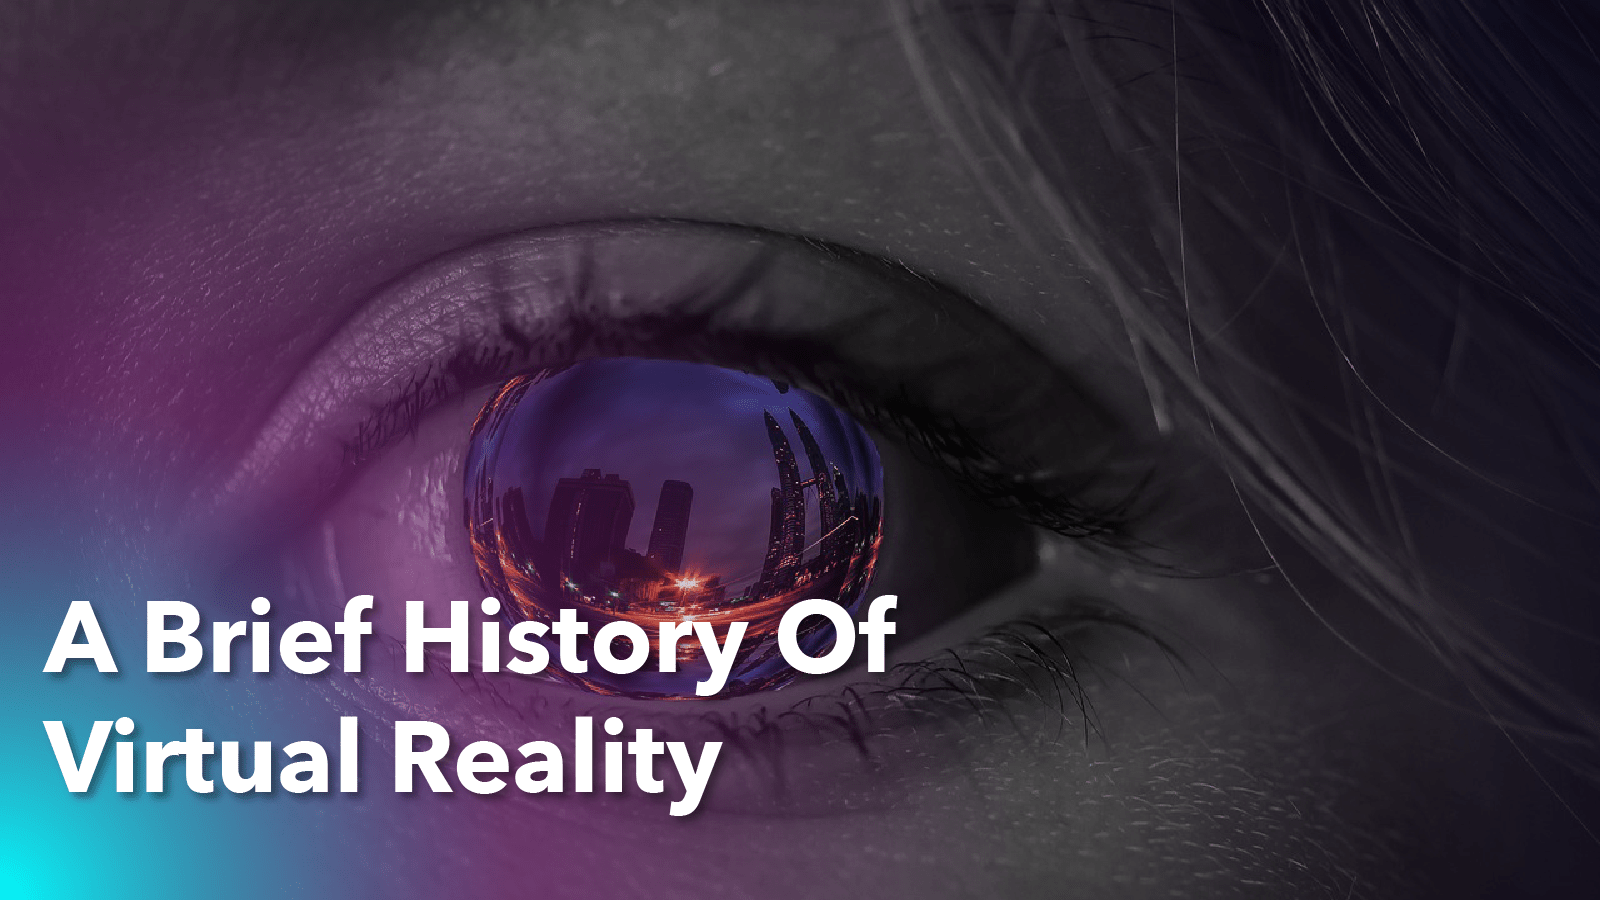 A Brief History of VR